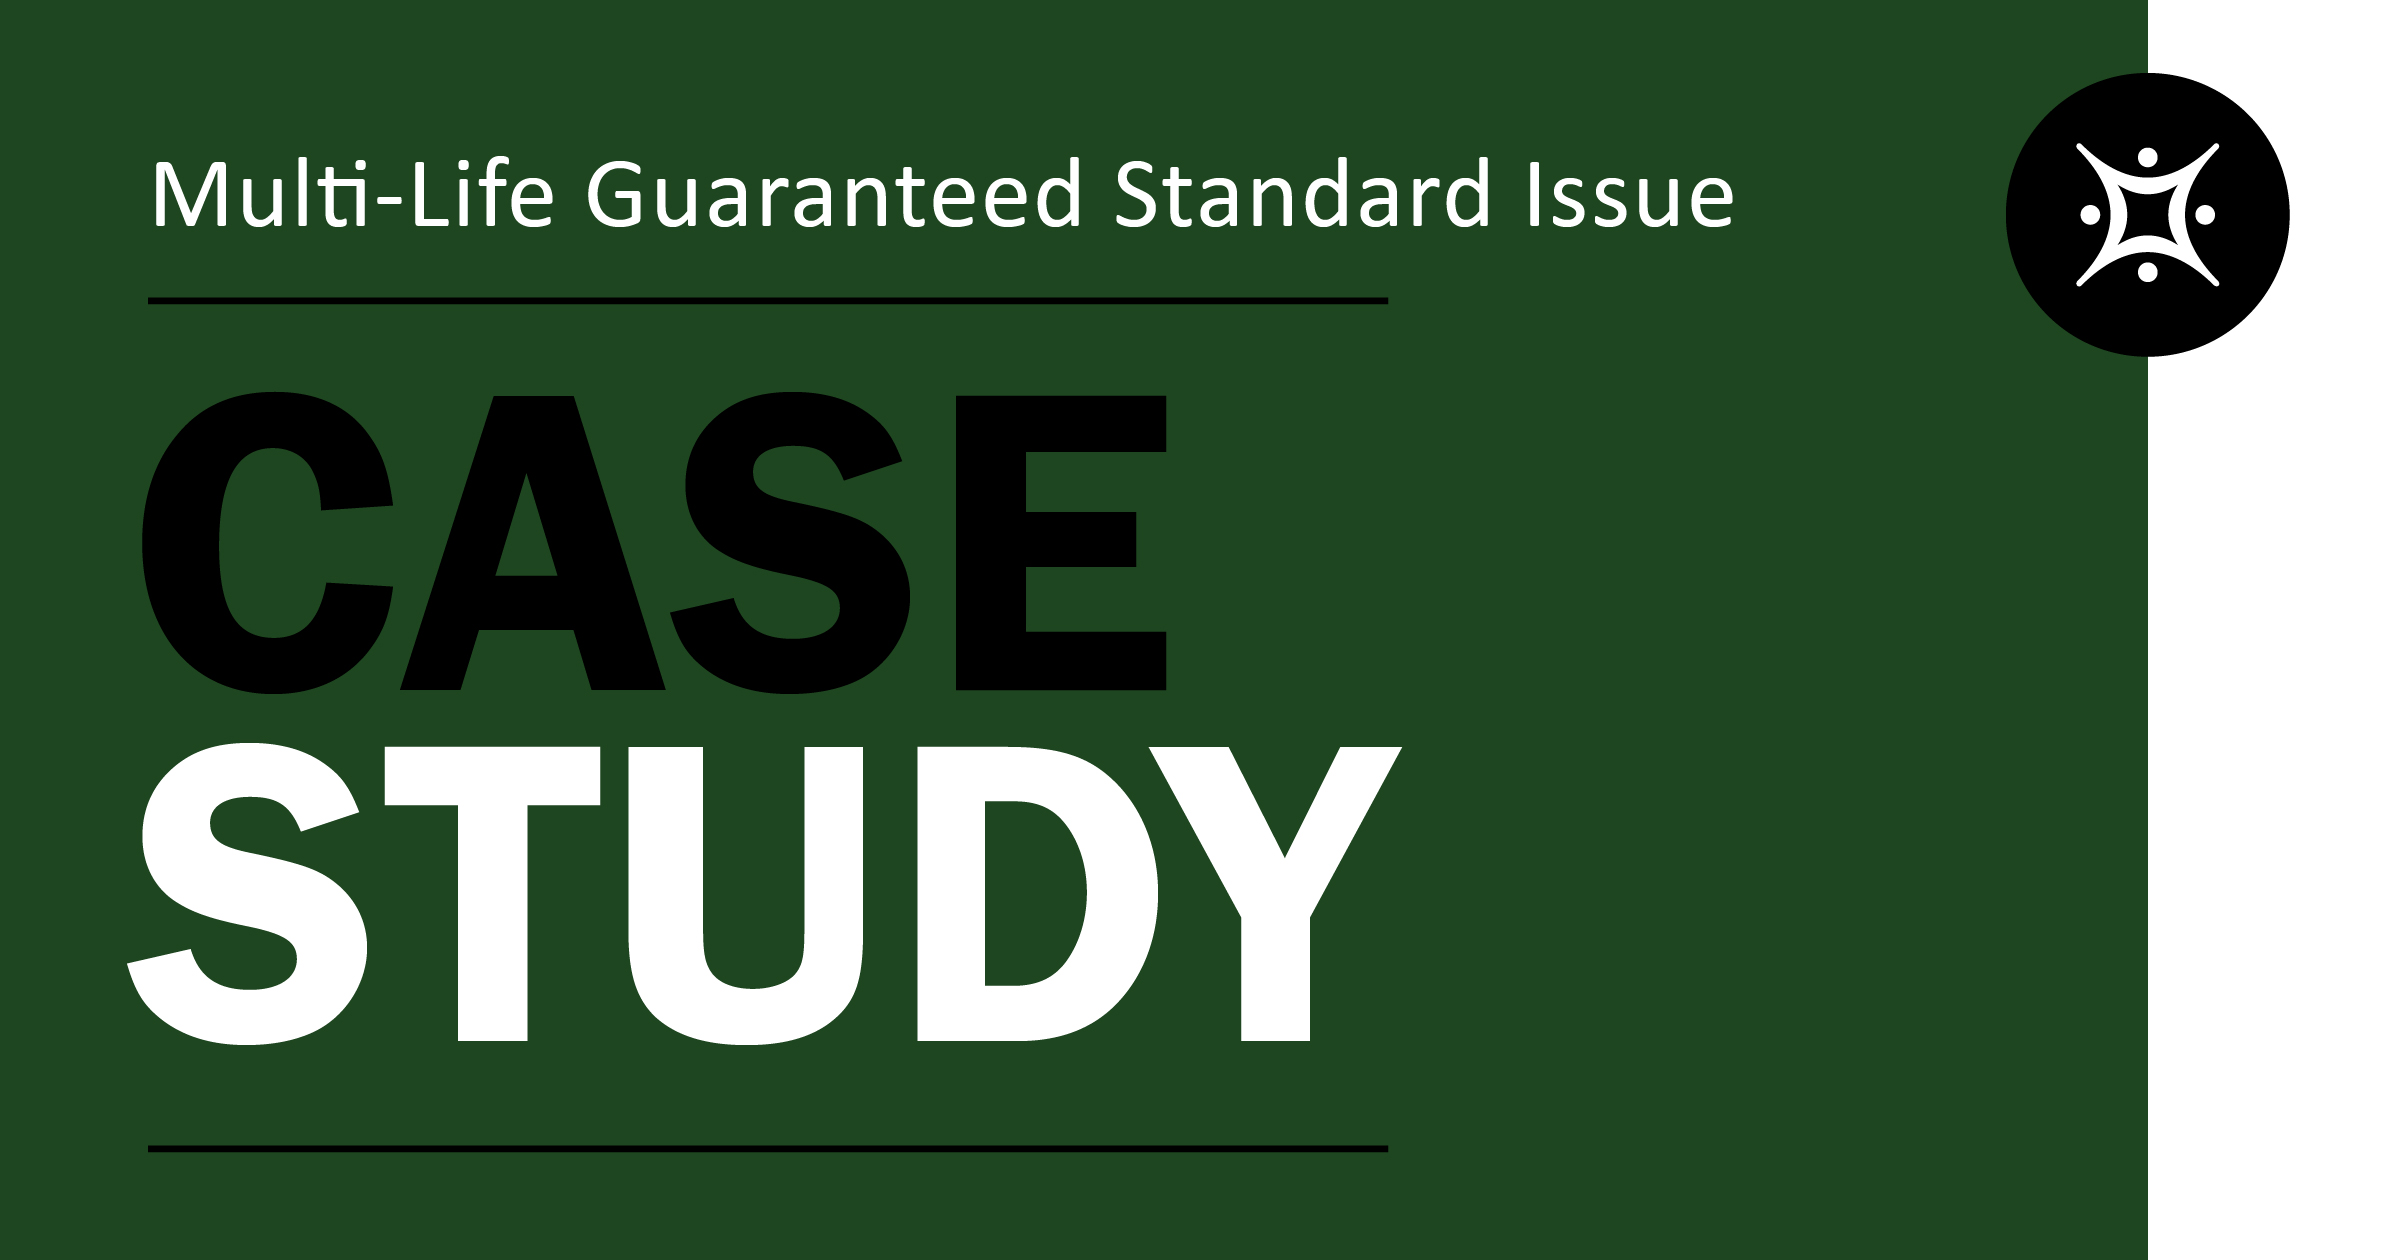 Case Study: Multi-Life Guaranteed Standard Issue